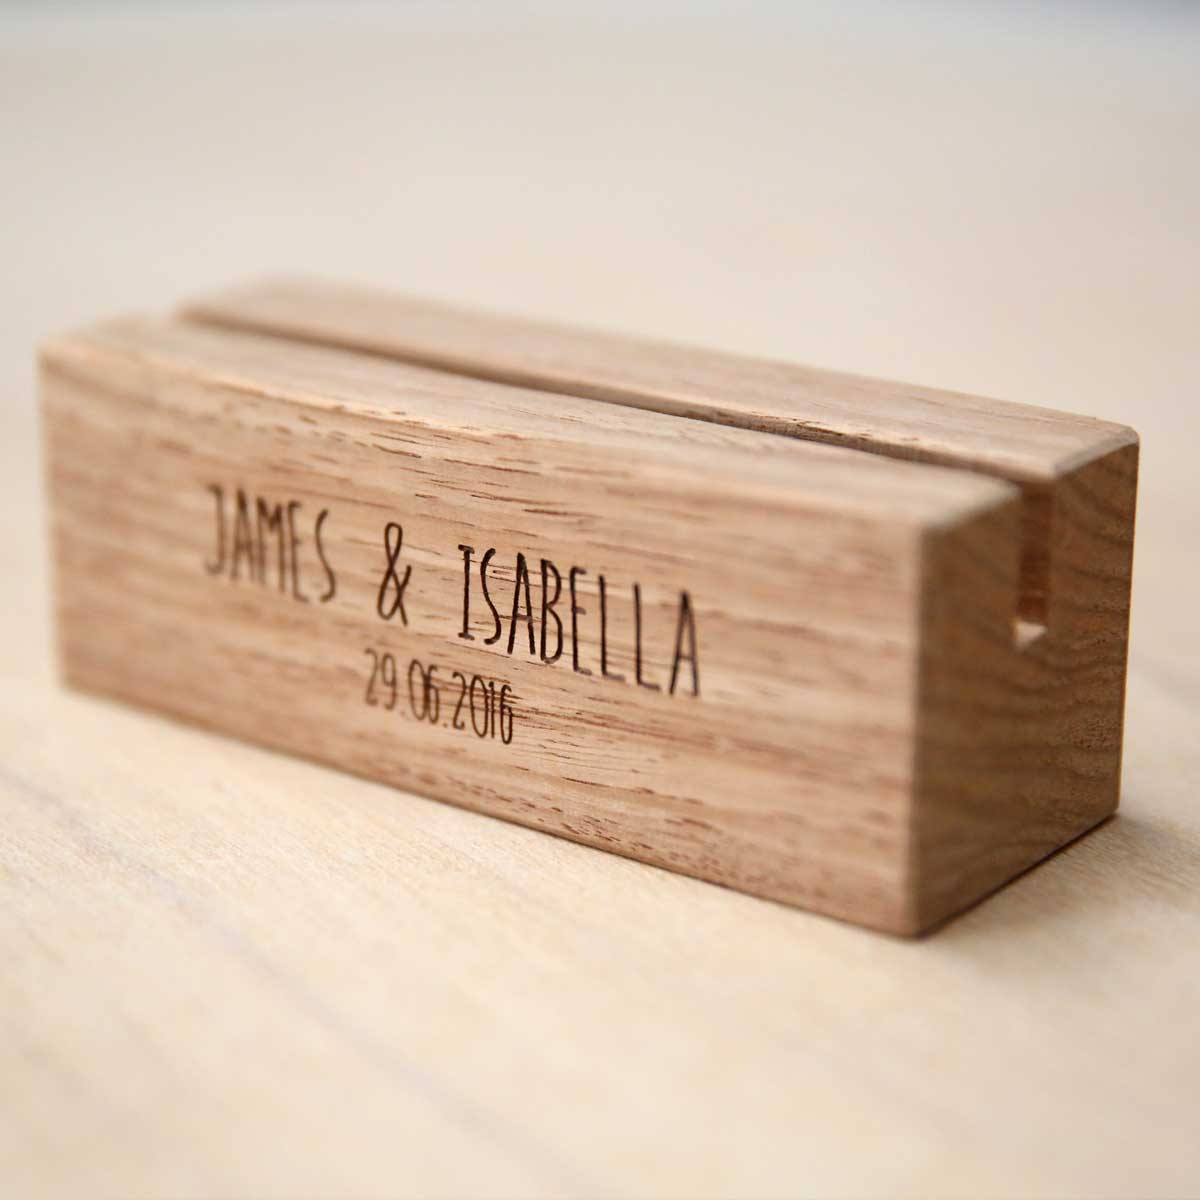 https://thelaserco.com/wp-content/uploads/2020/07/Wedding-timber-menu-holders.jpg